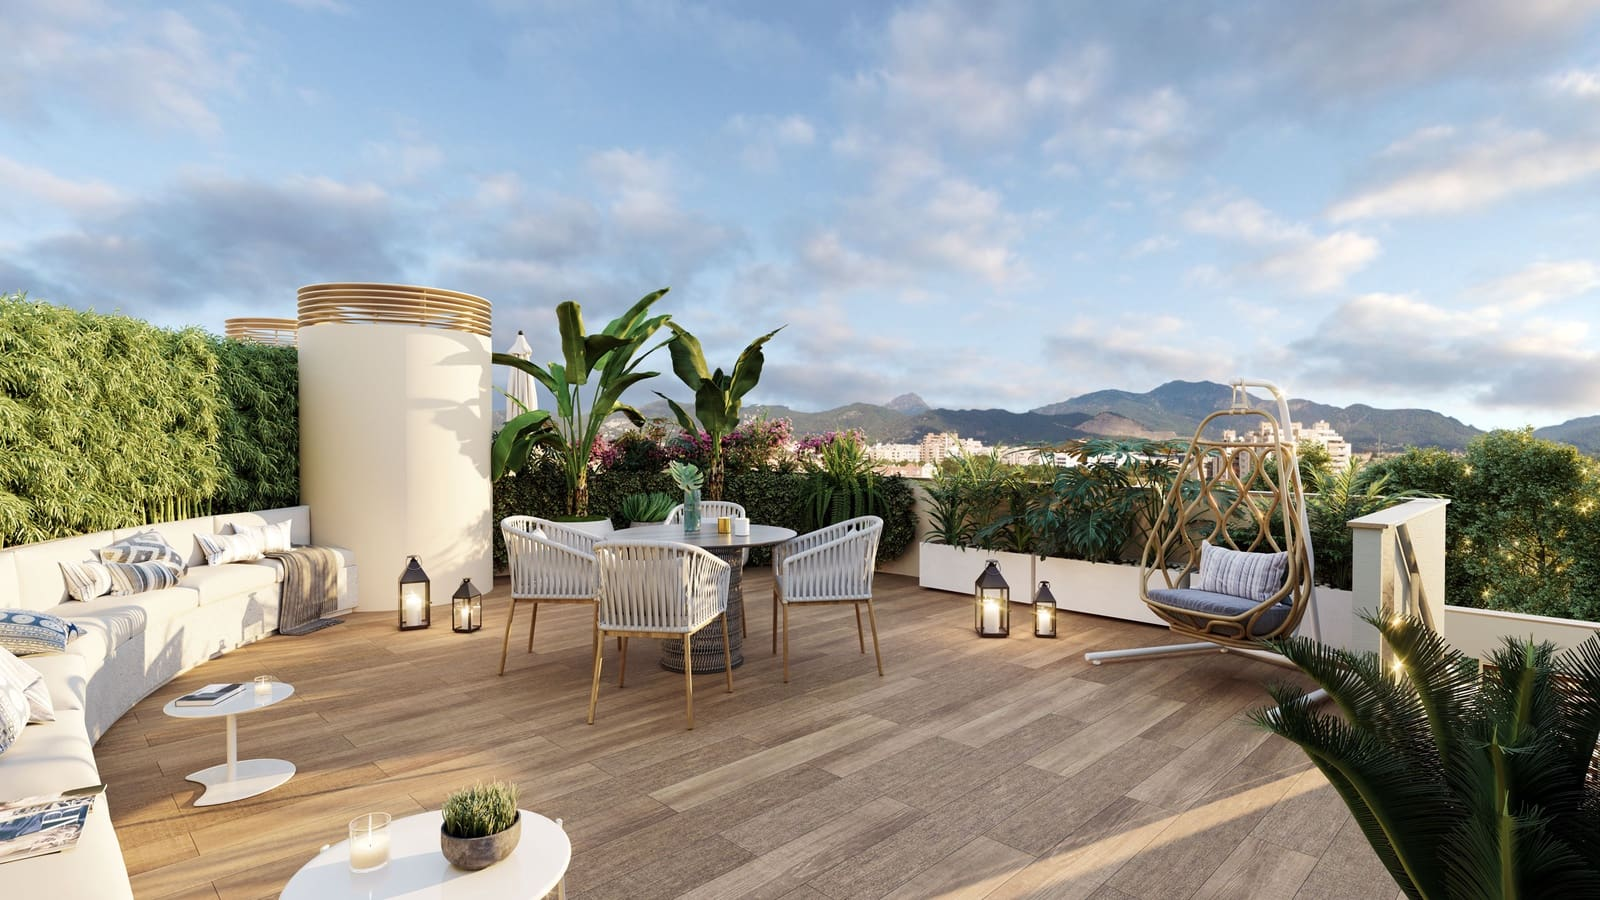 3 bedroom Apartment for sale in Palma de Mallorca with pool - € 368,000 (Ref: 5931283)